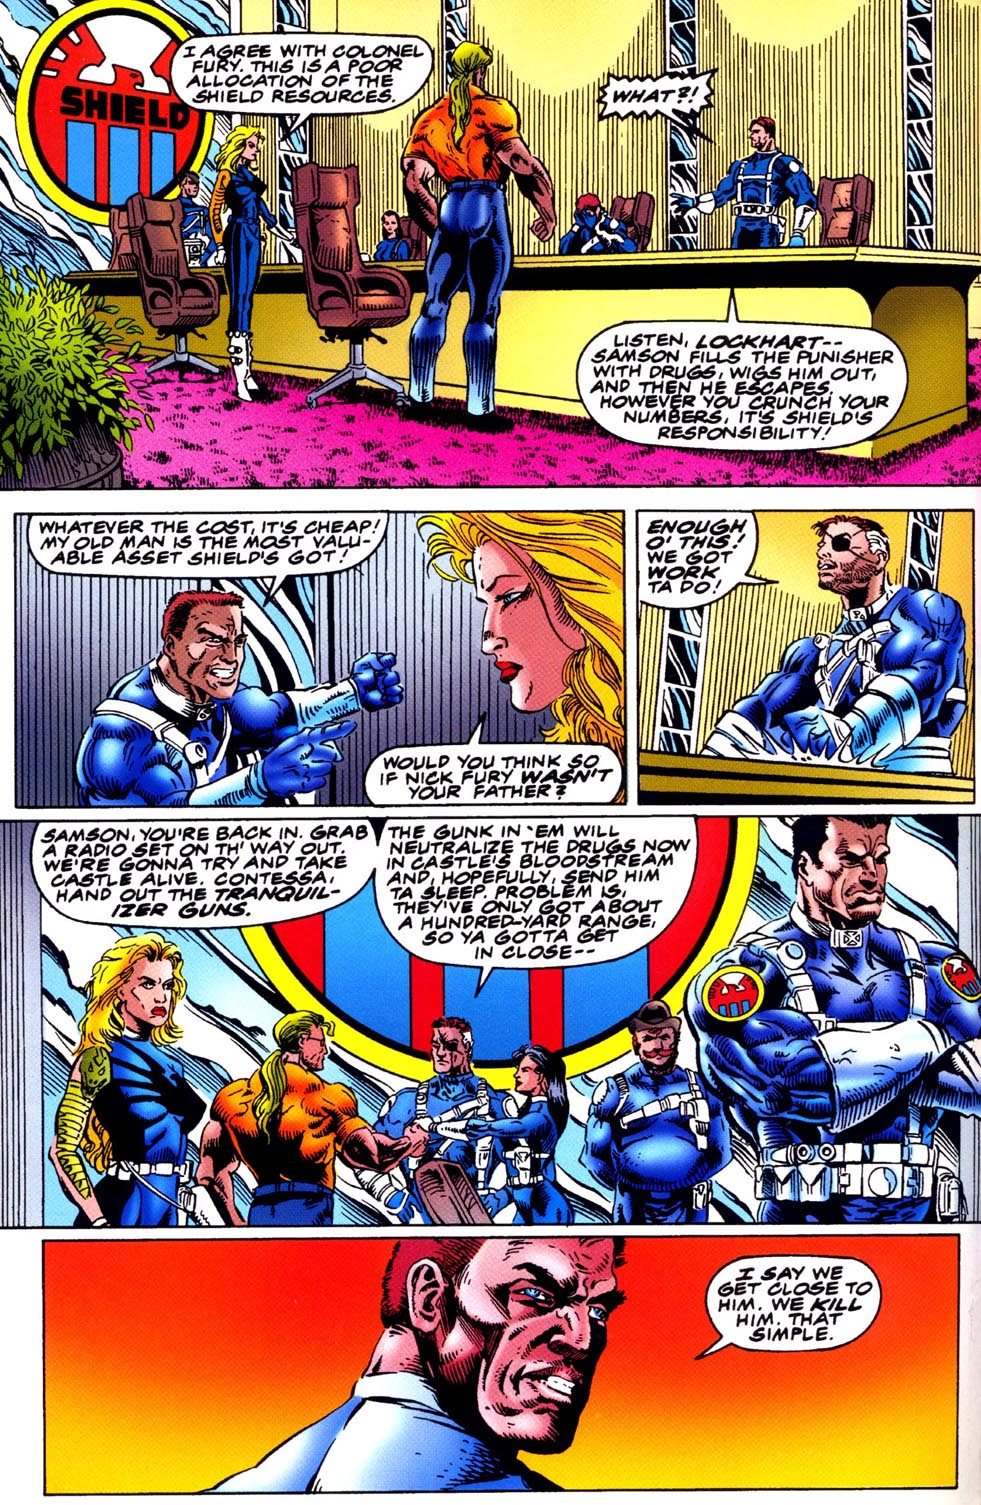 Read online Double Edge comic -  Issue # Issue Omega - 11